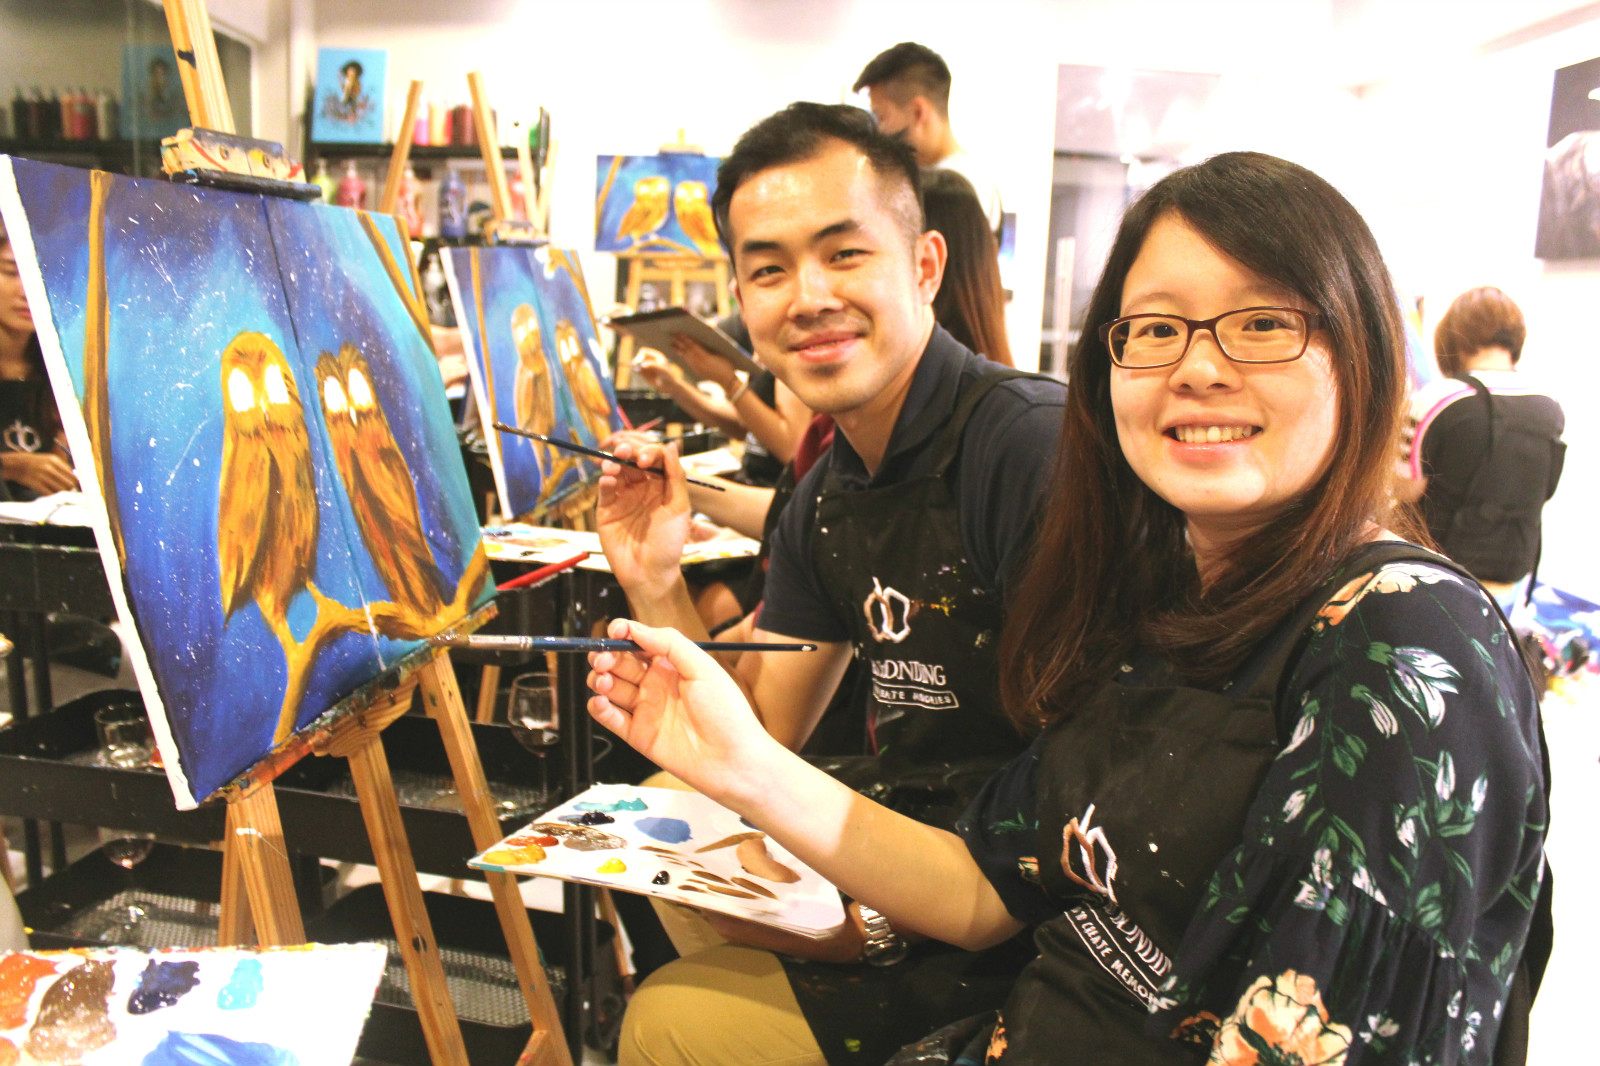 couple-painting-dating-date-night-art-and-bonding-artstudiokl-wine-and-paint